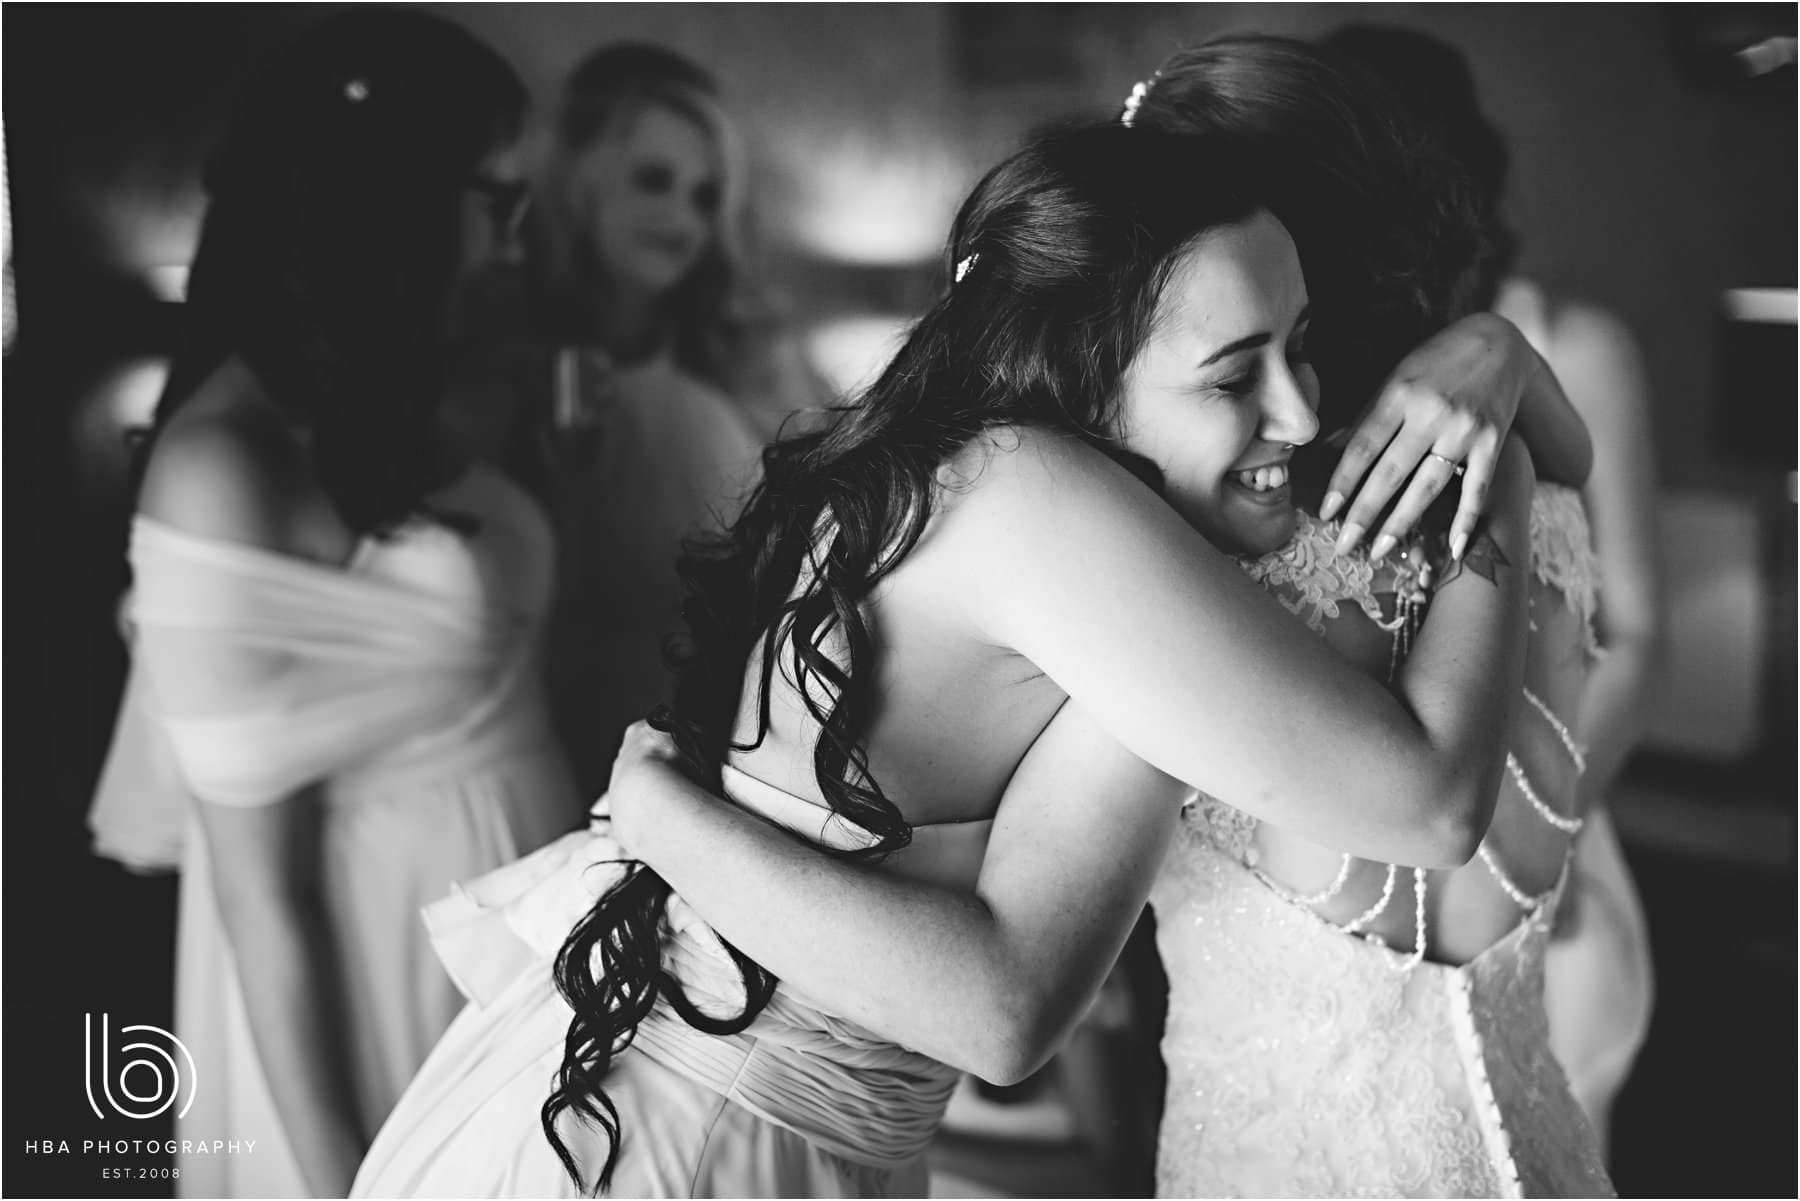 the bridesmaids hugging the bride